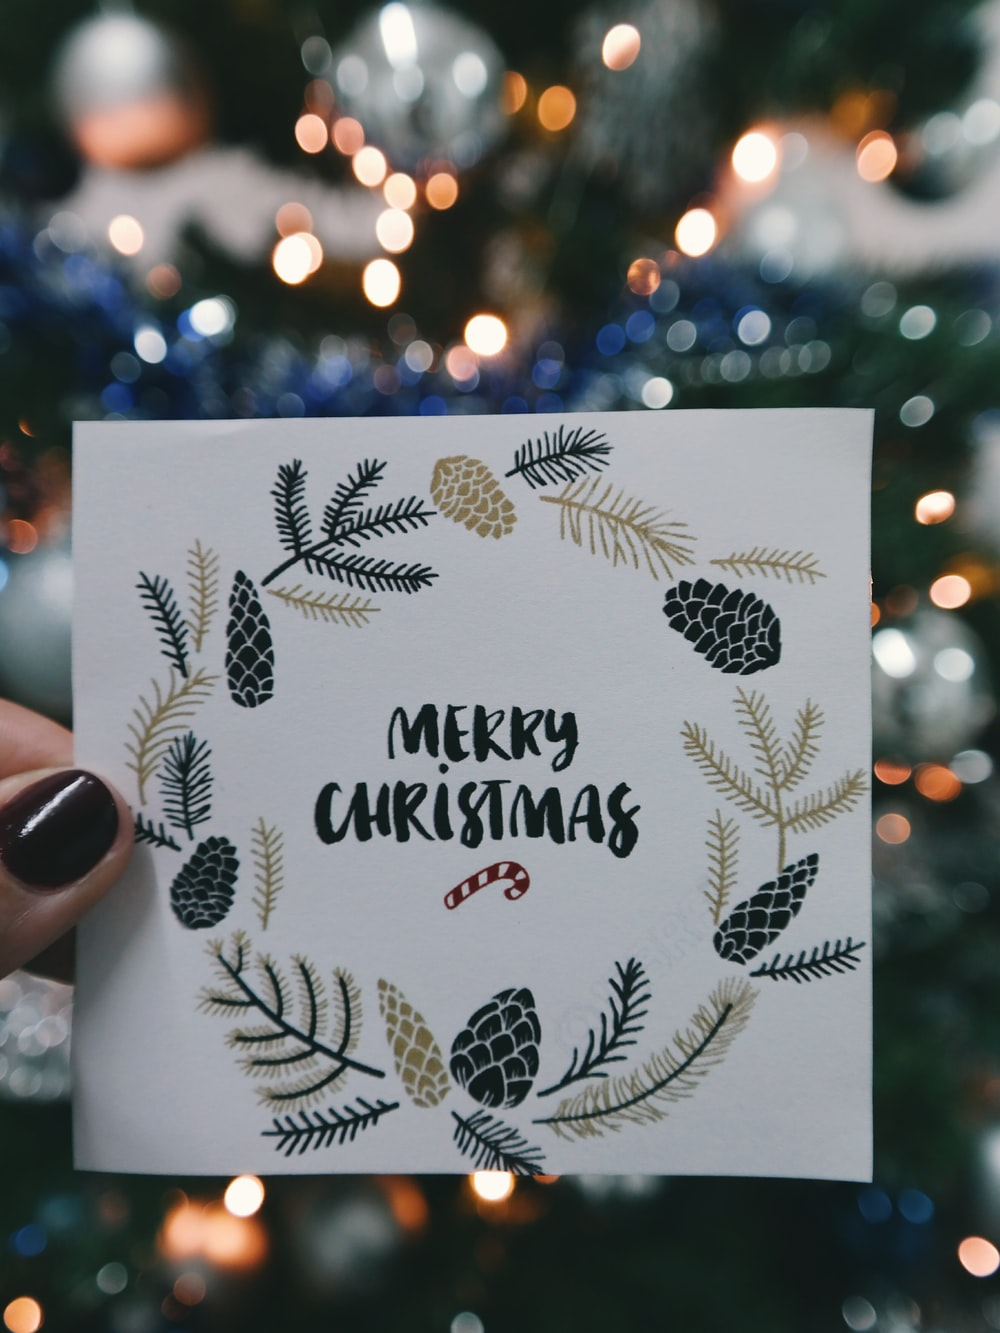 "A piece of paper that says ""Merry Christmas"" with a wreath around it, being held up in front of an XMAS tree."